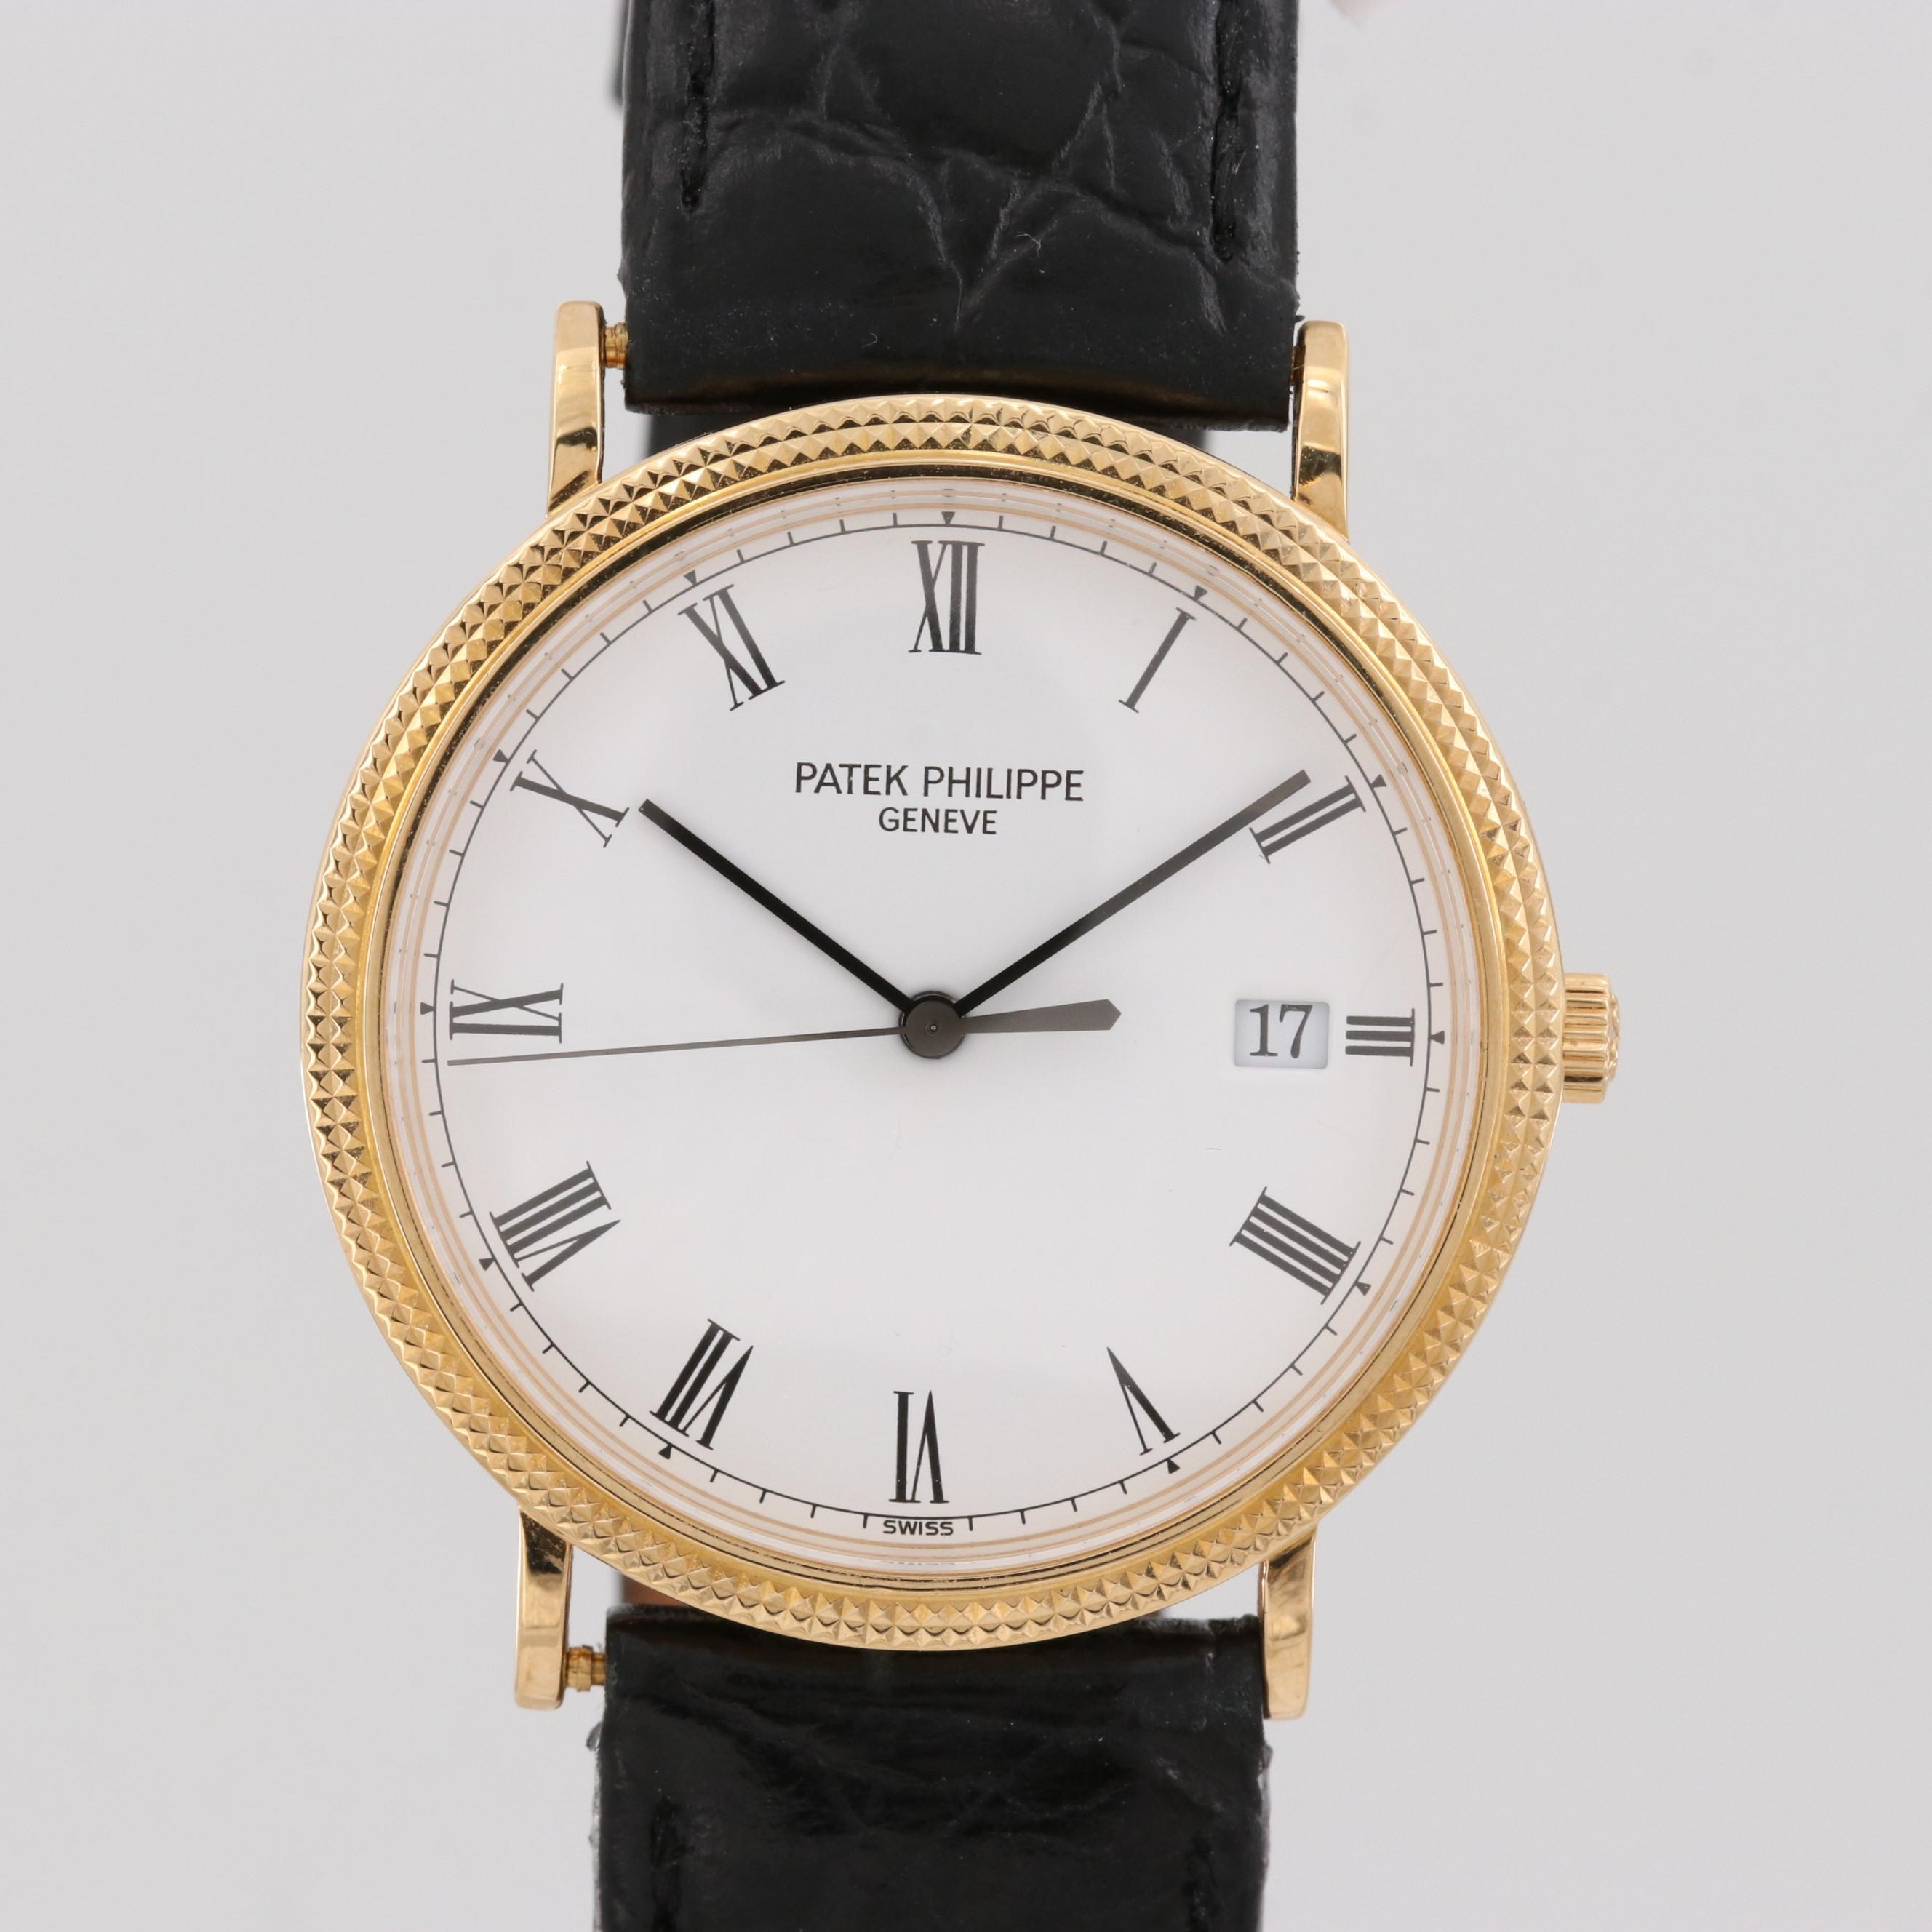 Patek Philippe Calatrava 18K Yellow Gold Quartz Wristwatch, Circa 1994